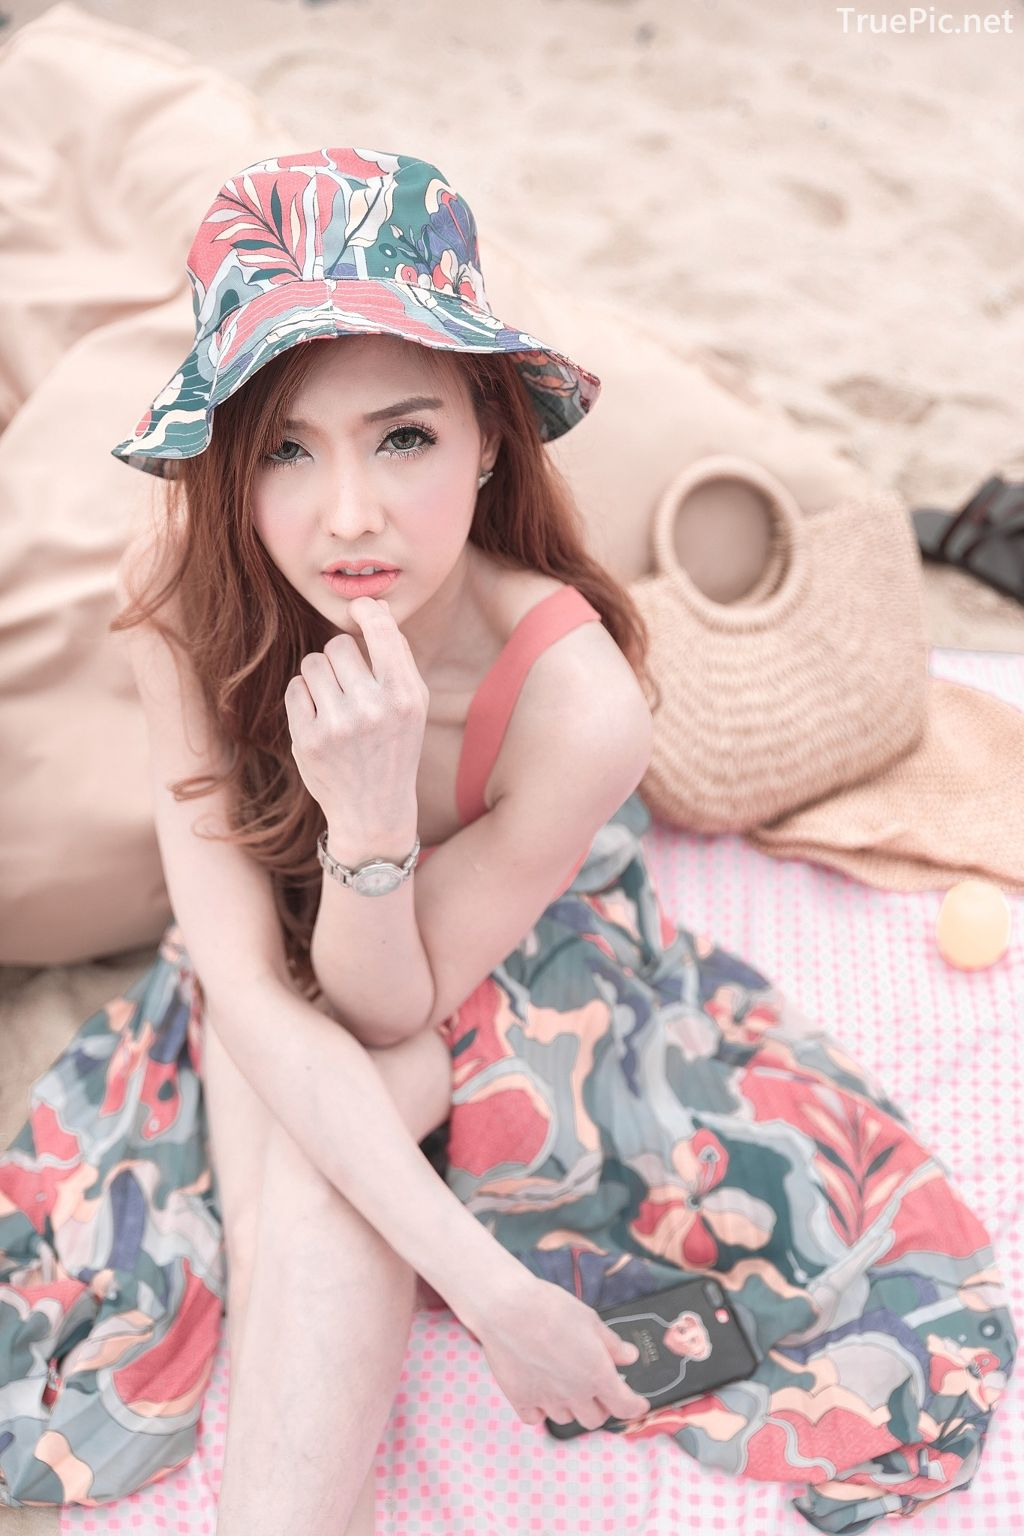 Thailand model - I'nam Arissara Chaidech - Pink Bikini on the beach - TruePic.net - Picture 17